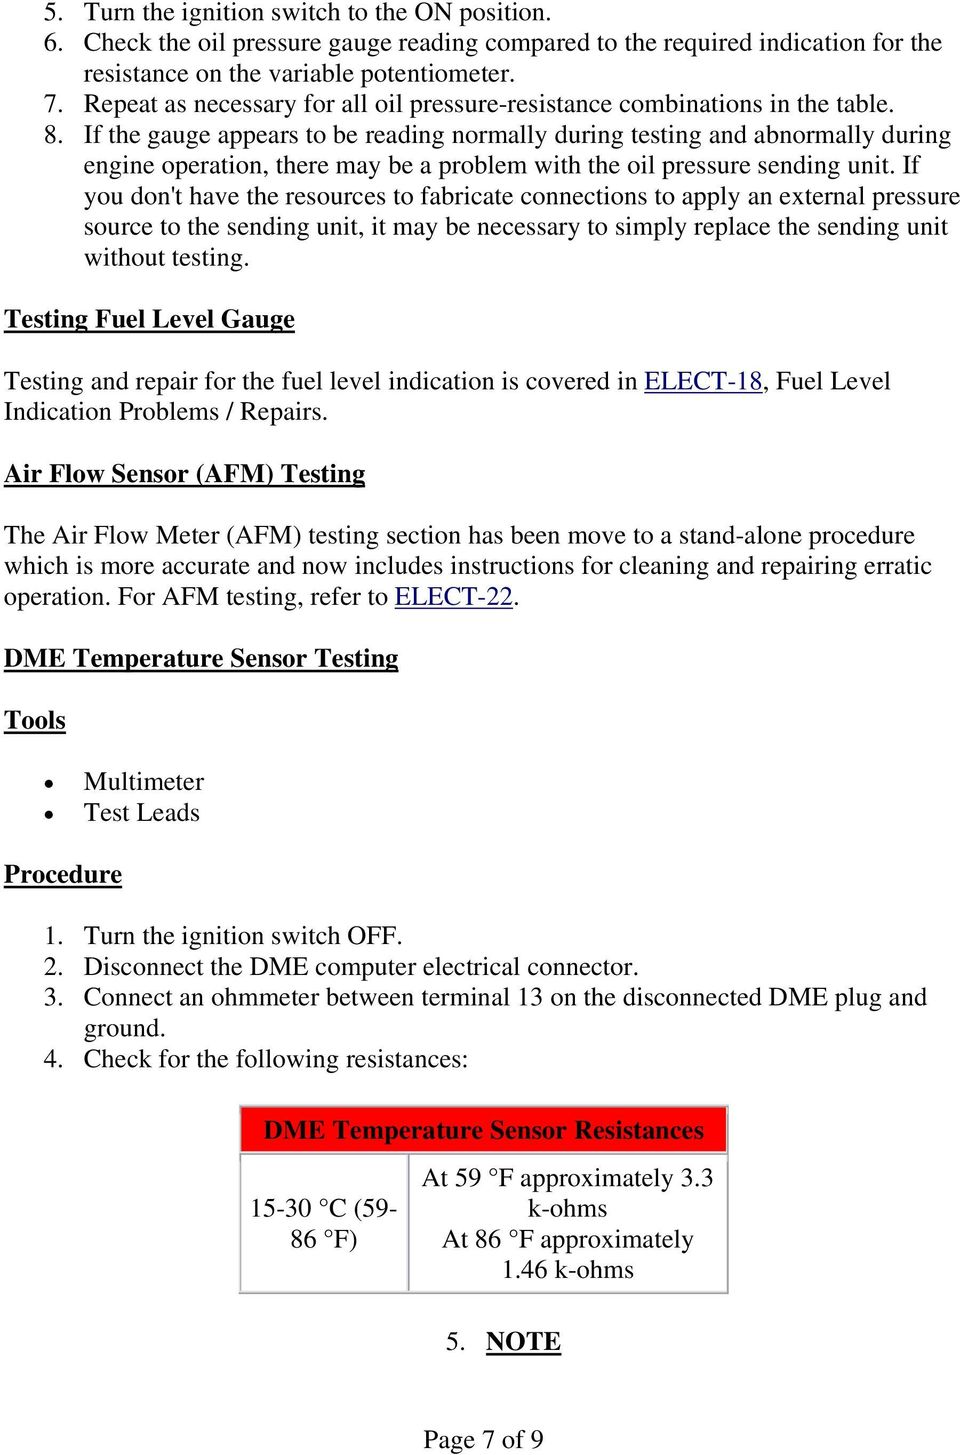 ELECT-19, Sensors and Gauges - Information, Troubleshooting